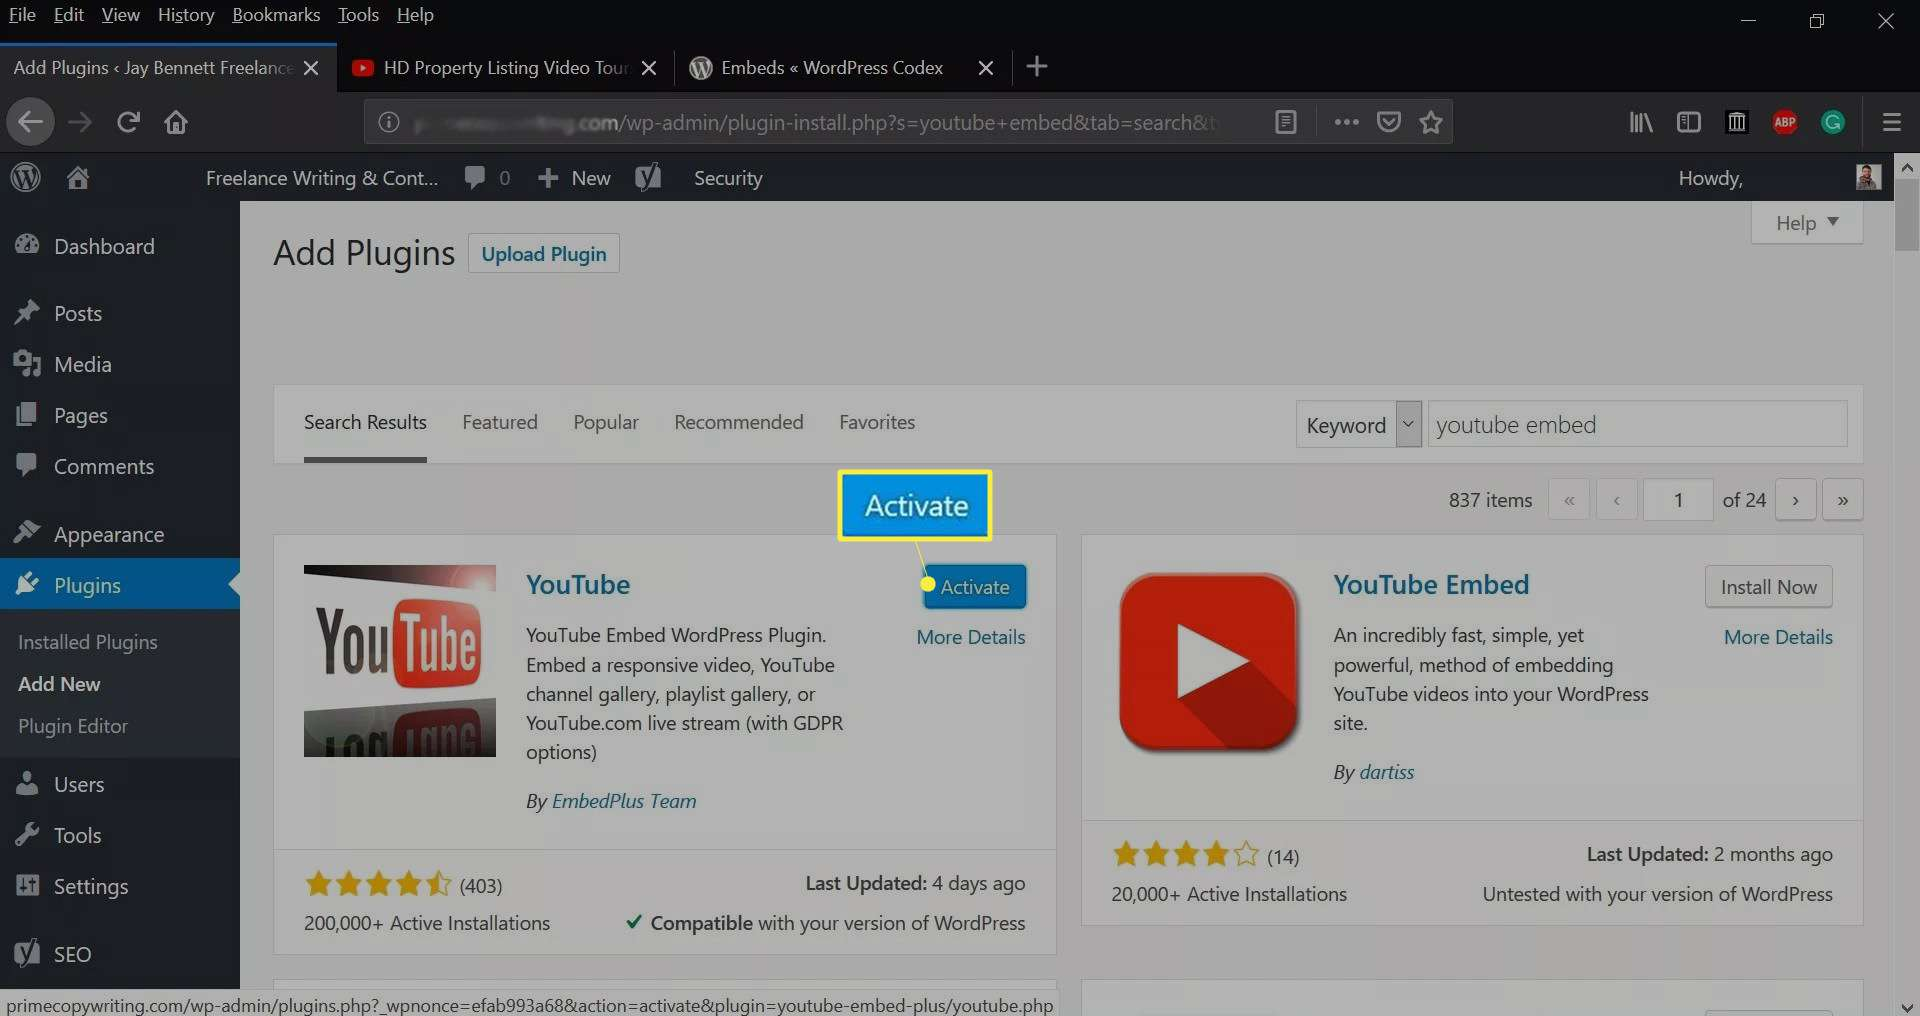 Activate on the WordPress dashboard